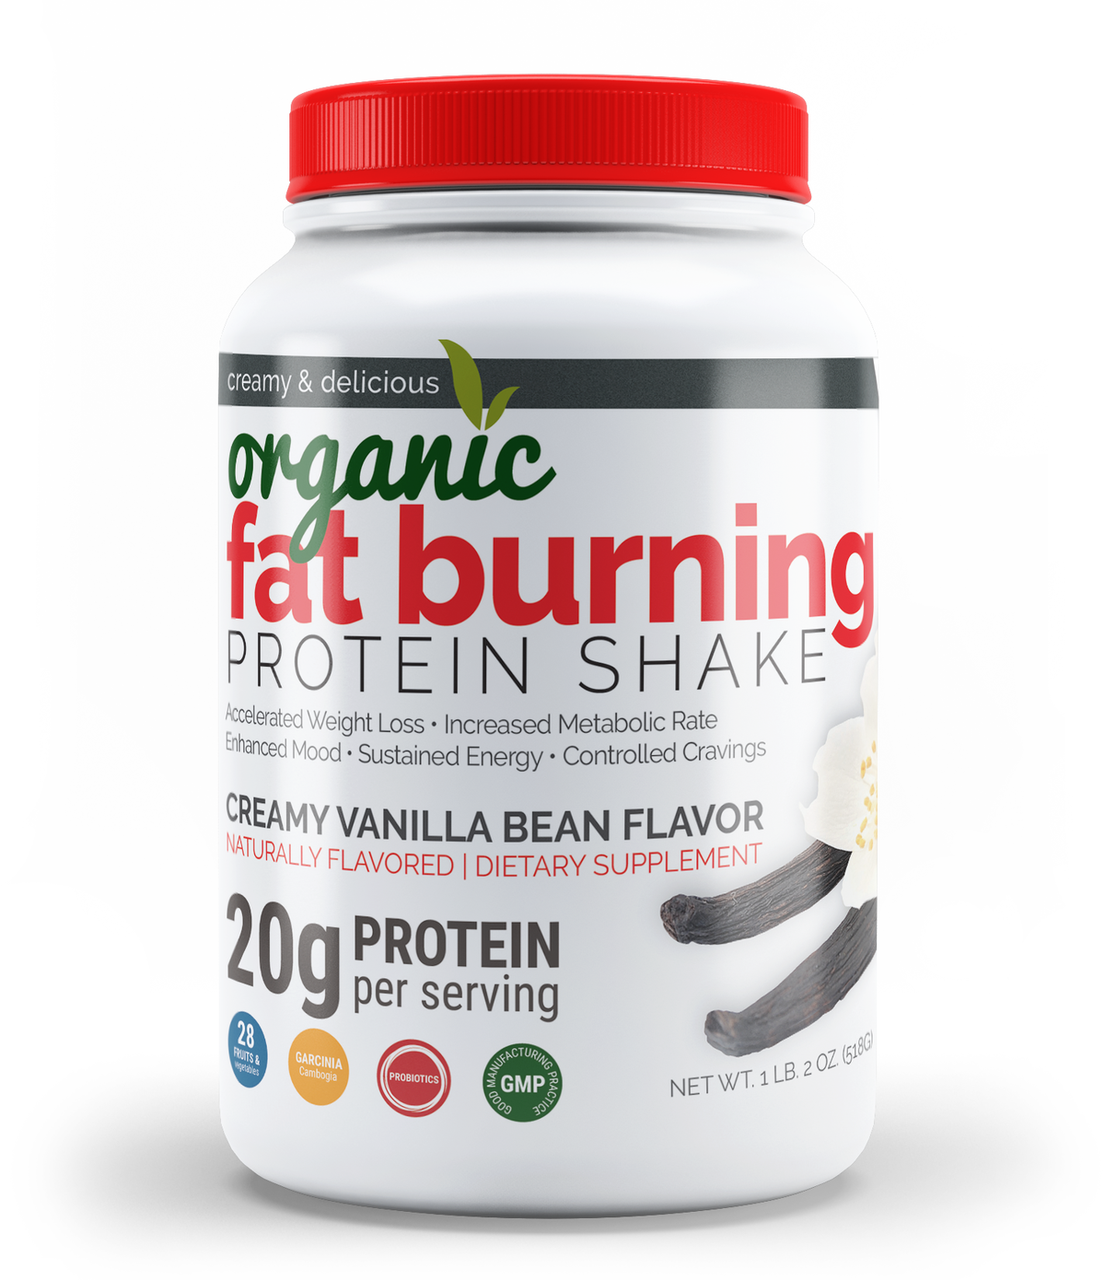 fat-burning-protein-shake-front-10637.1501058314.1280.1280.png